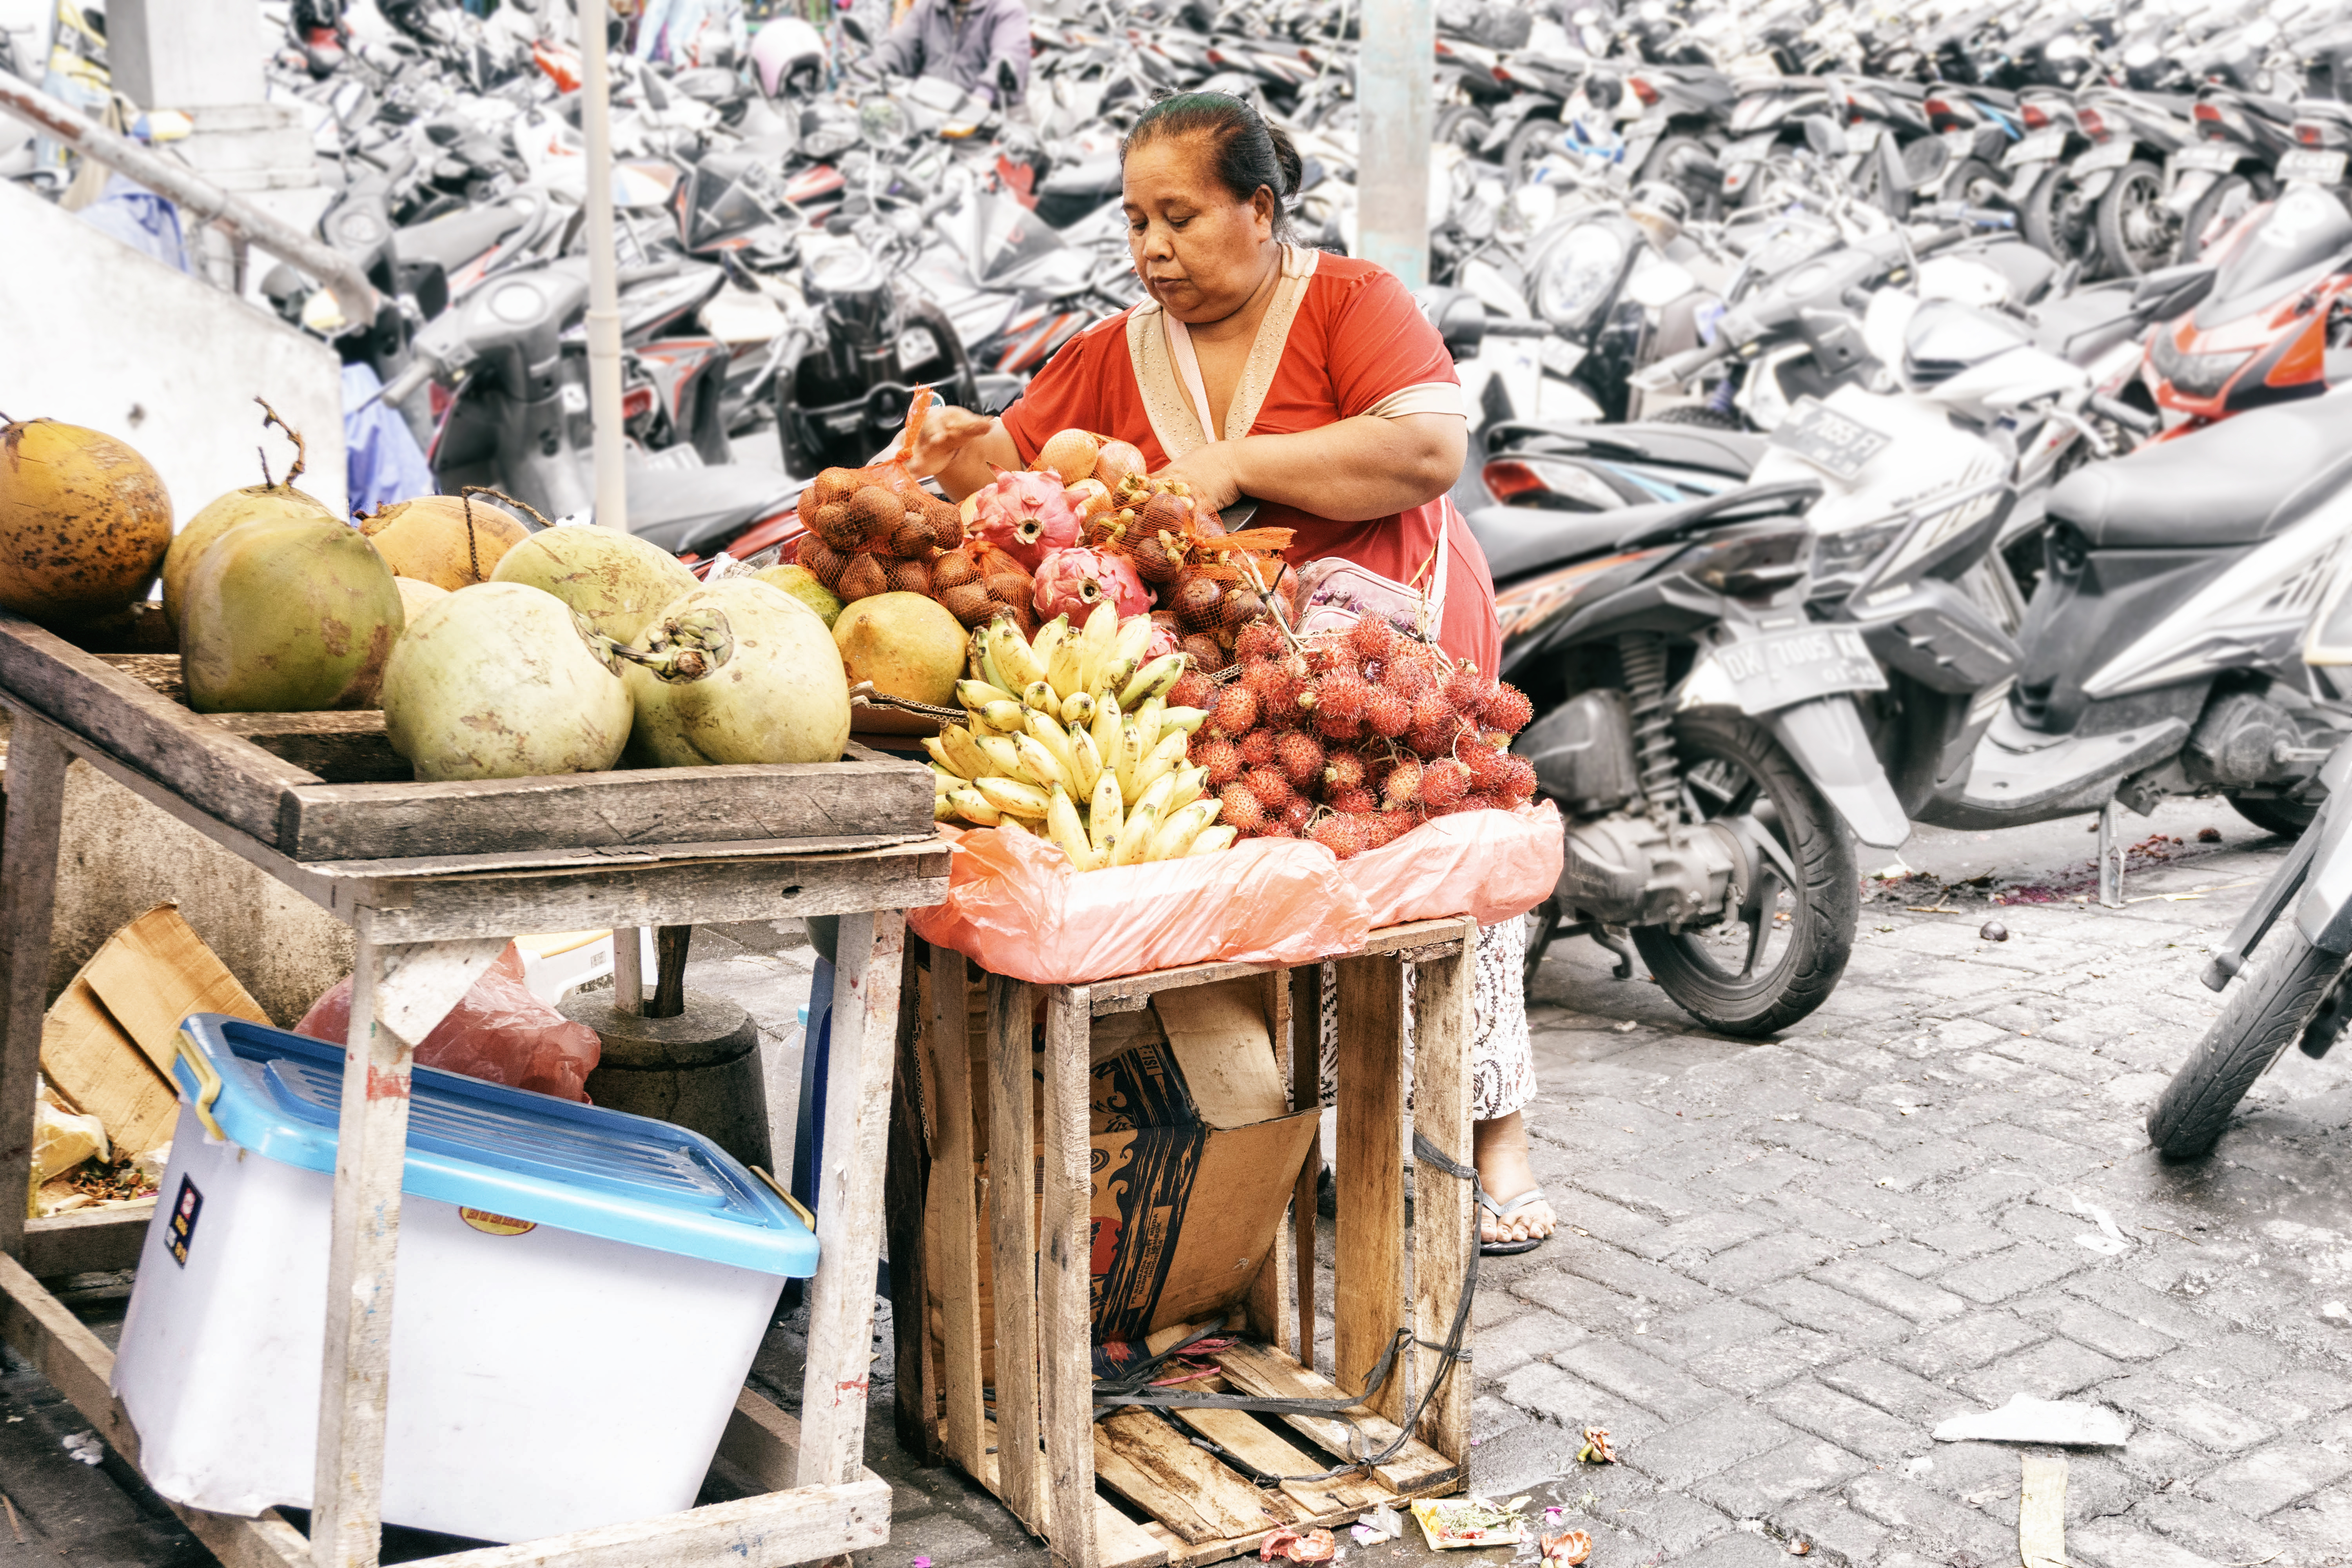 Ubud Street Photography